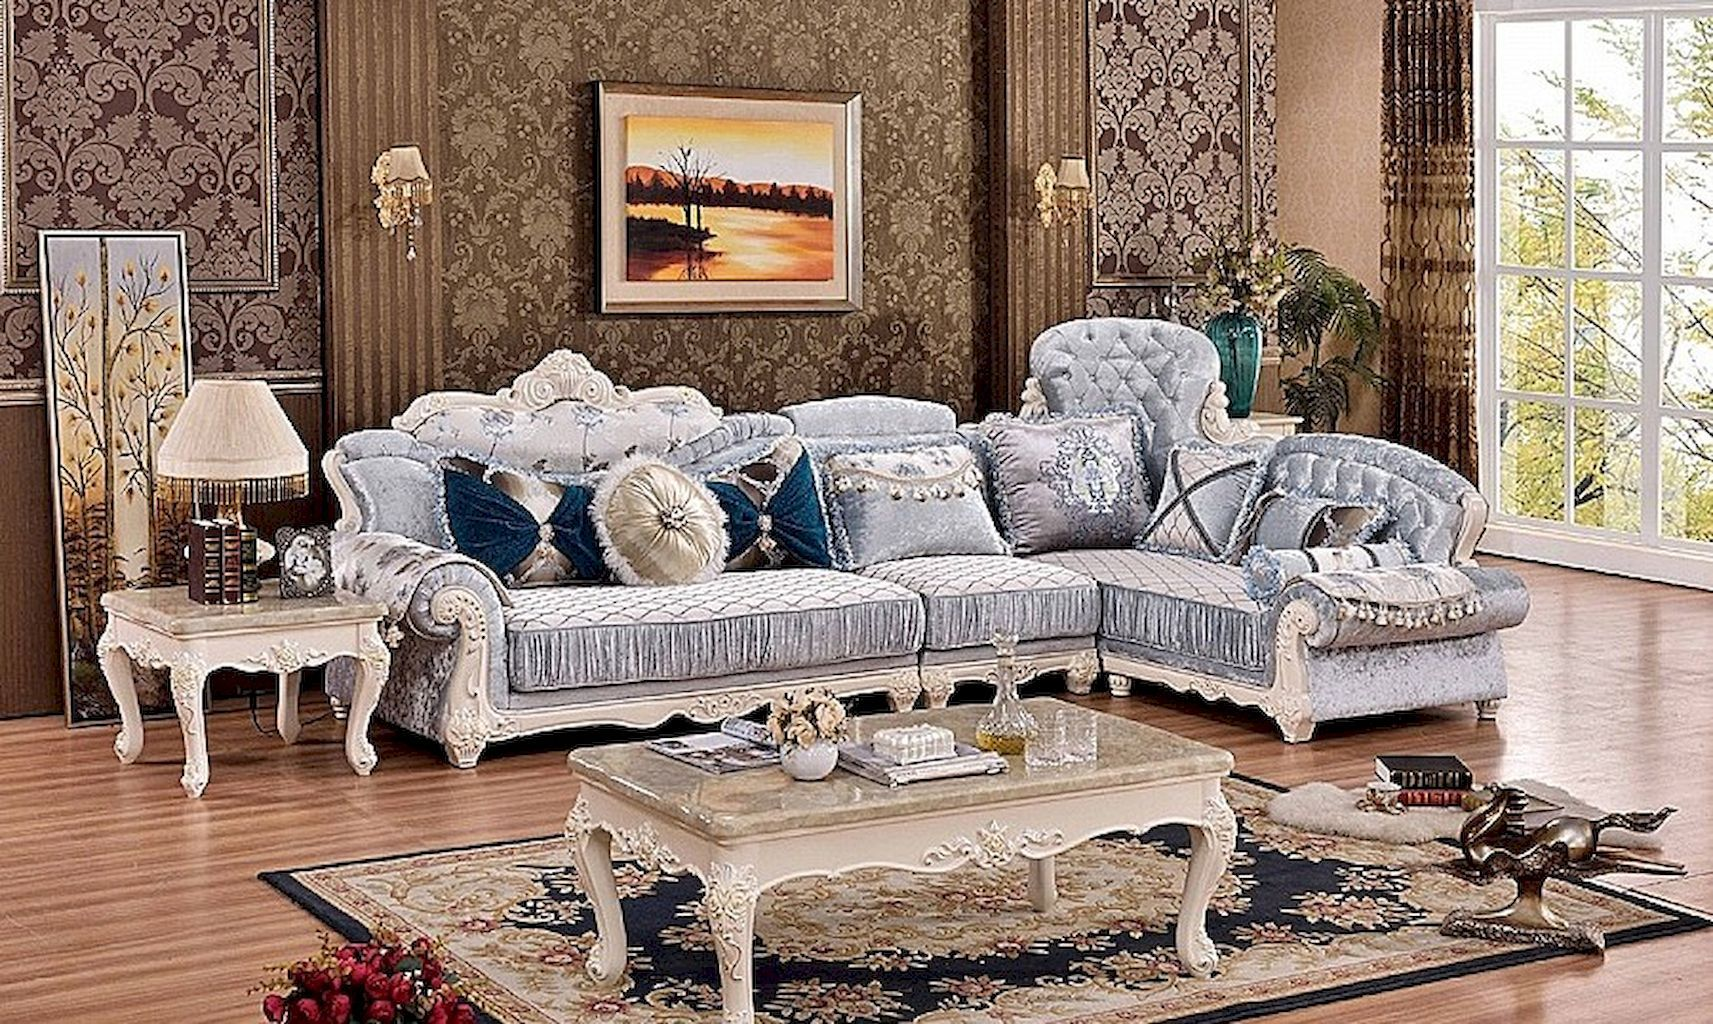 65 incredible french country living room decor ideas